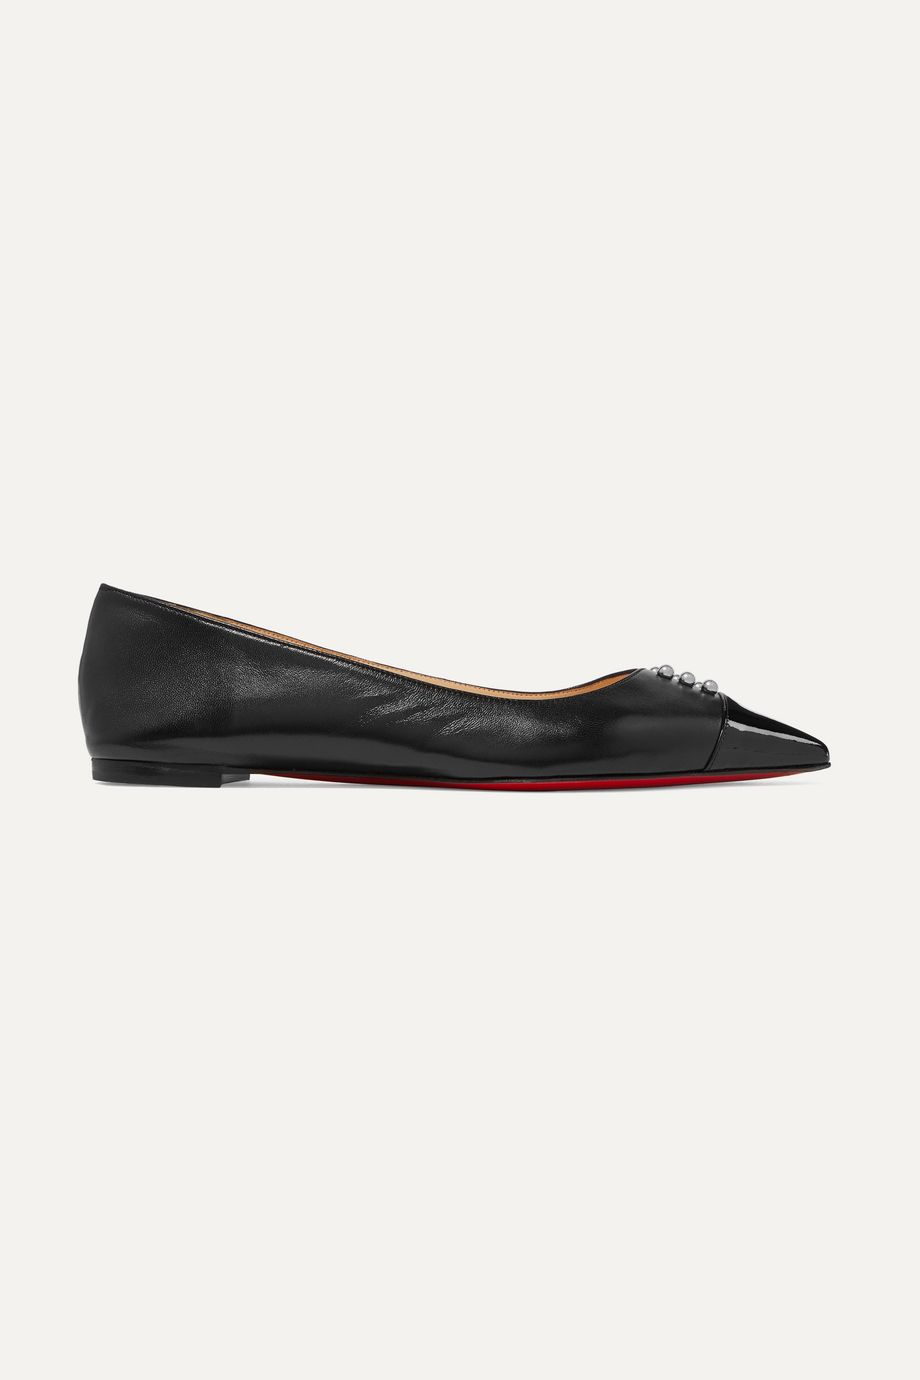 Christian Louboutin Predupump embellished patent-leather trimmed leather point-toe flats